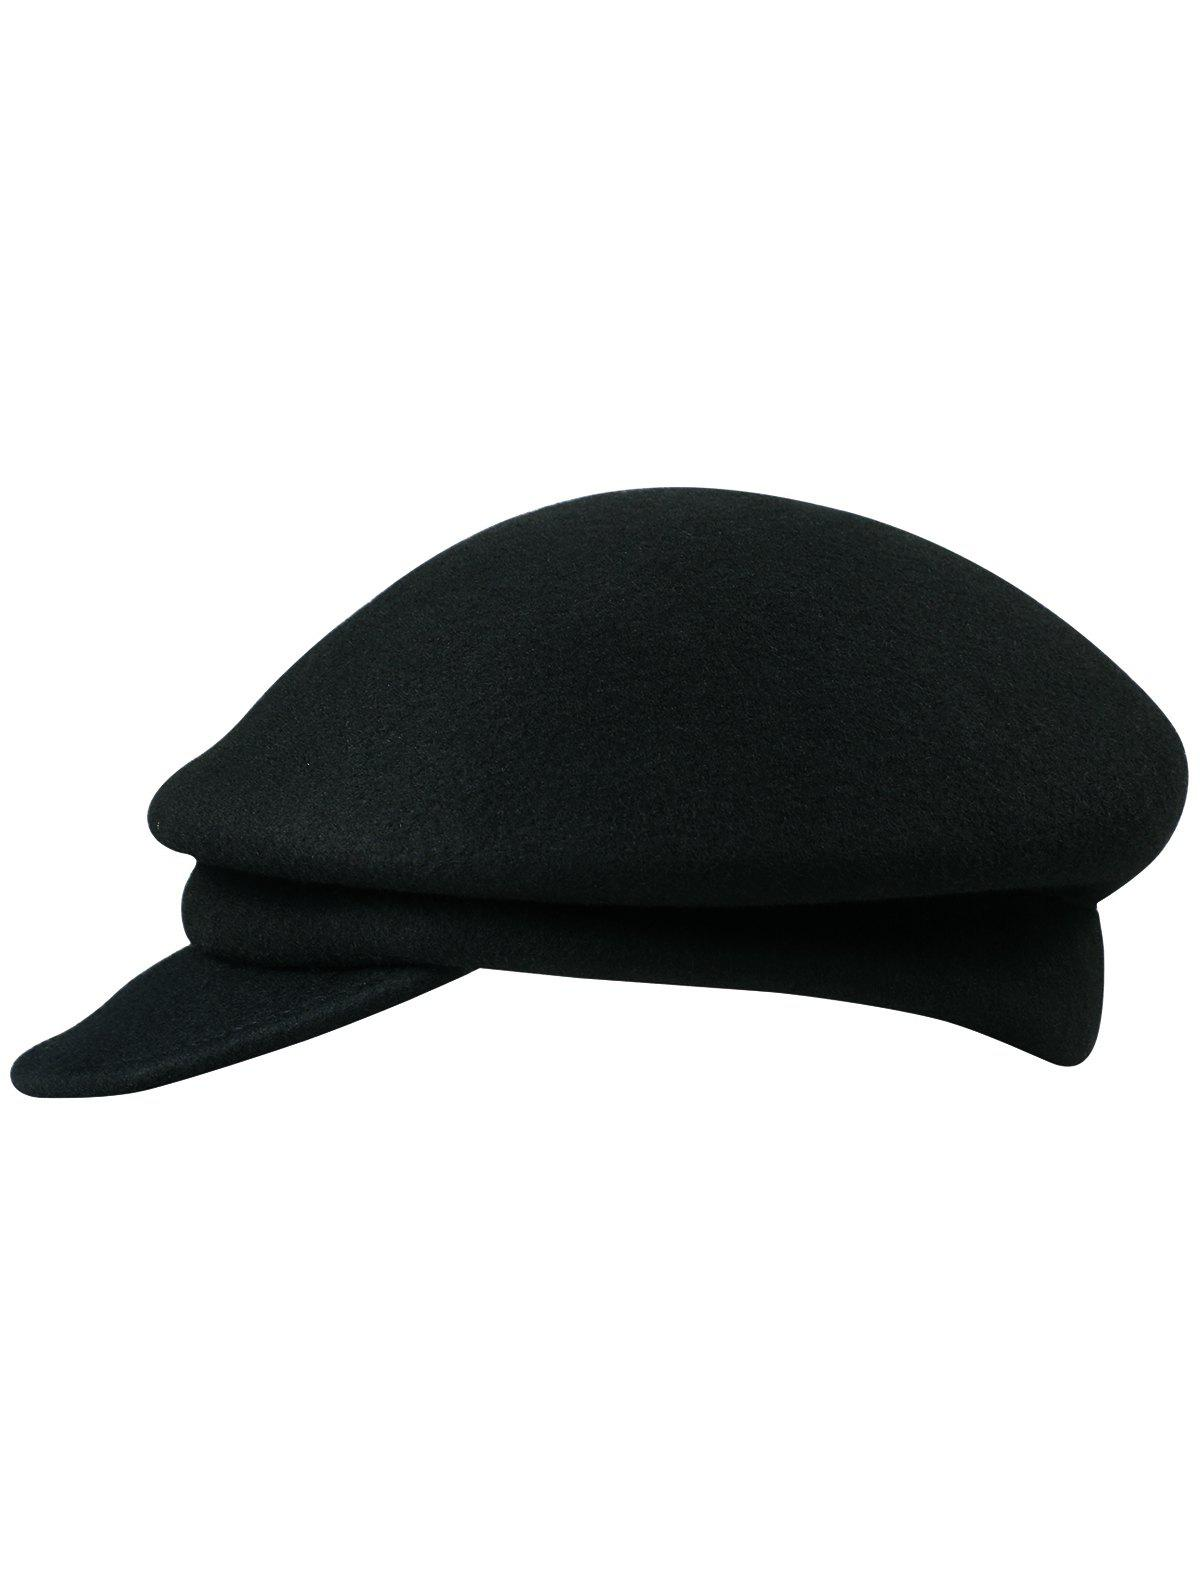 New Elegant Solid Color Wool Jeff Hat